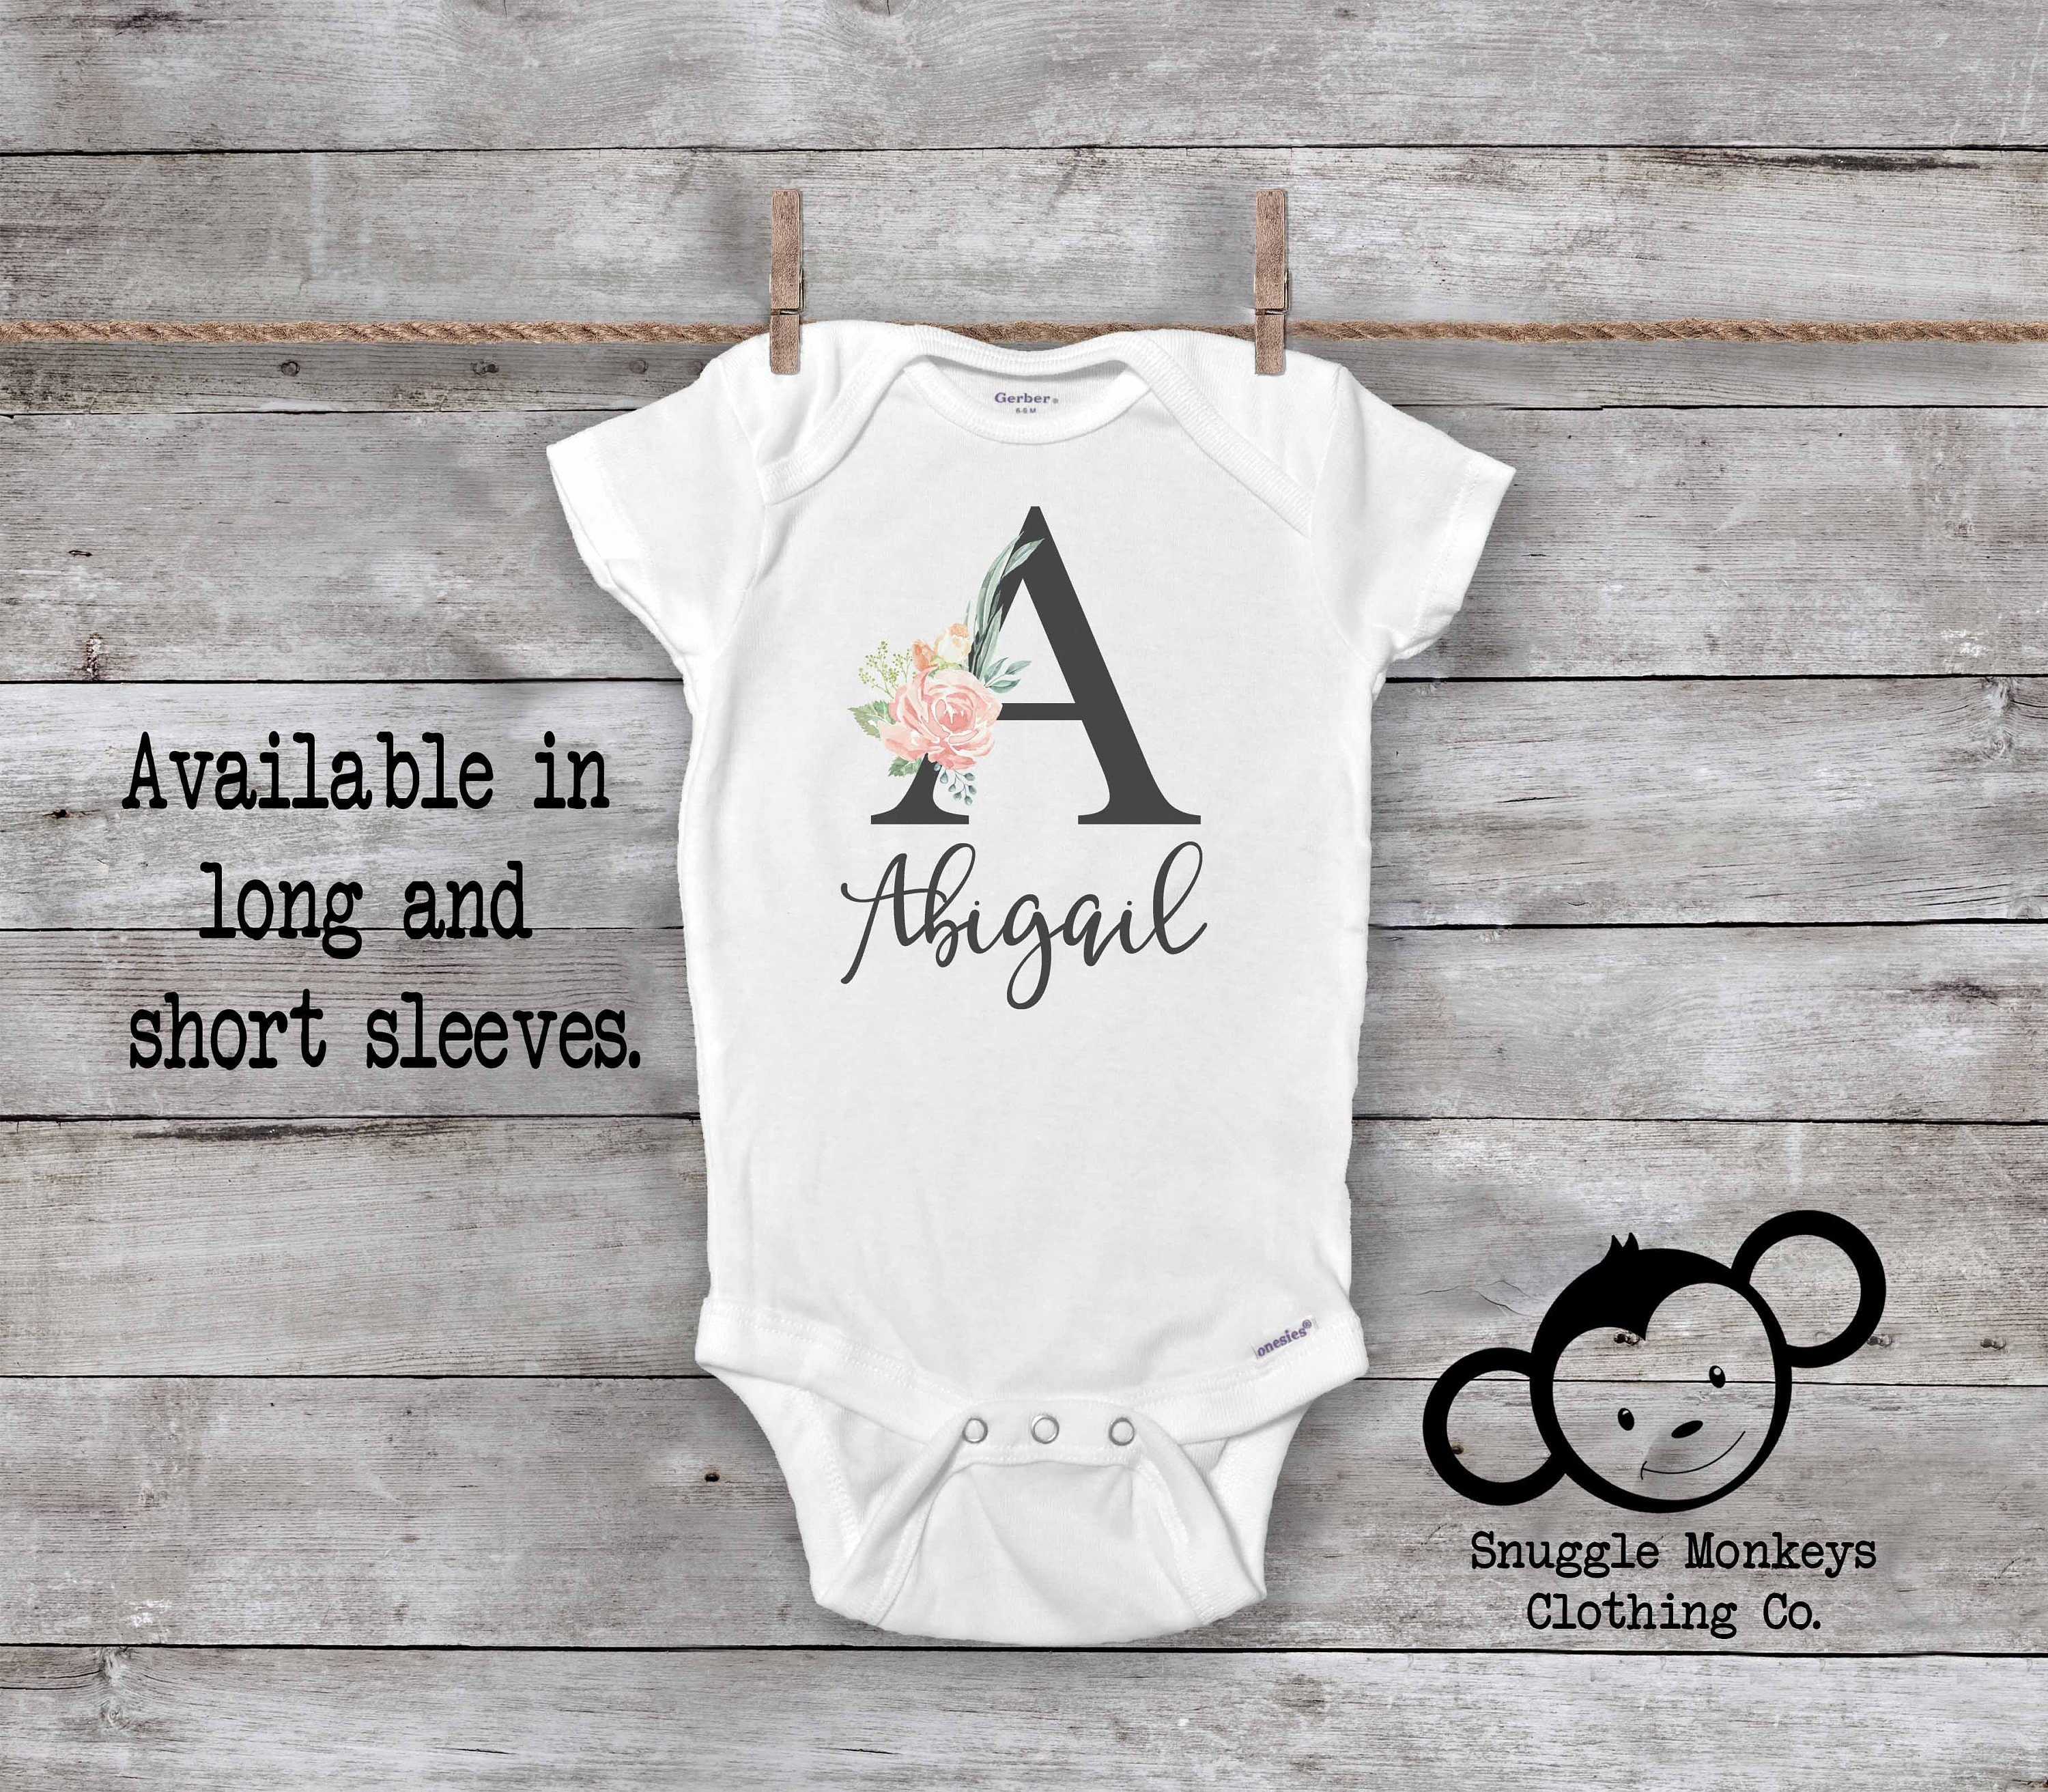 personalized baby gift baby shower gift Personalized baby onesie coming home outfit custom baby onesie custom baby gift